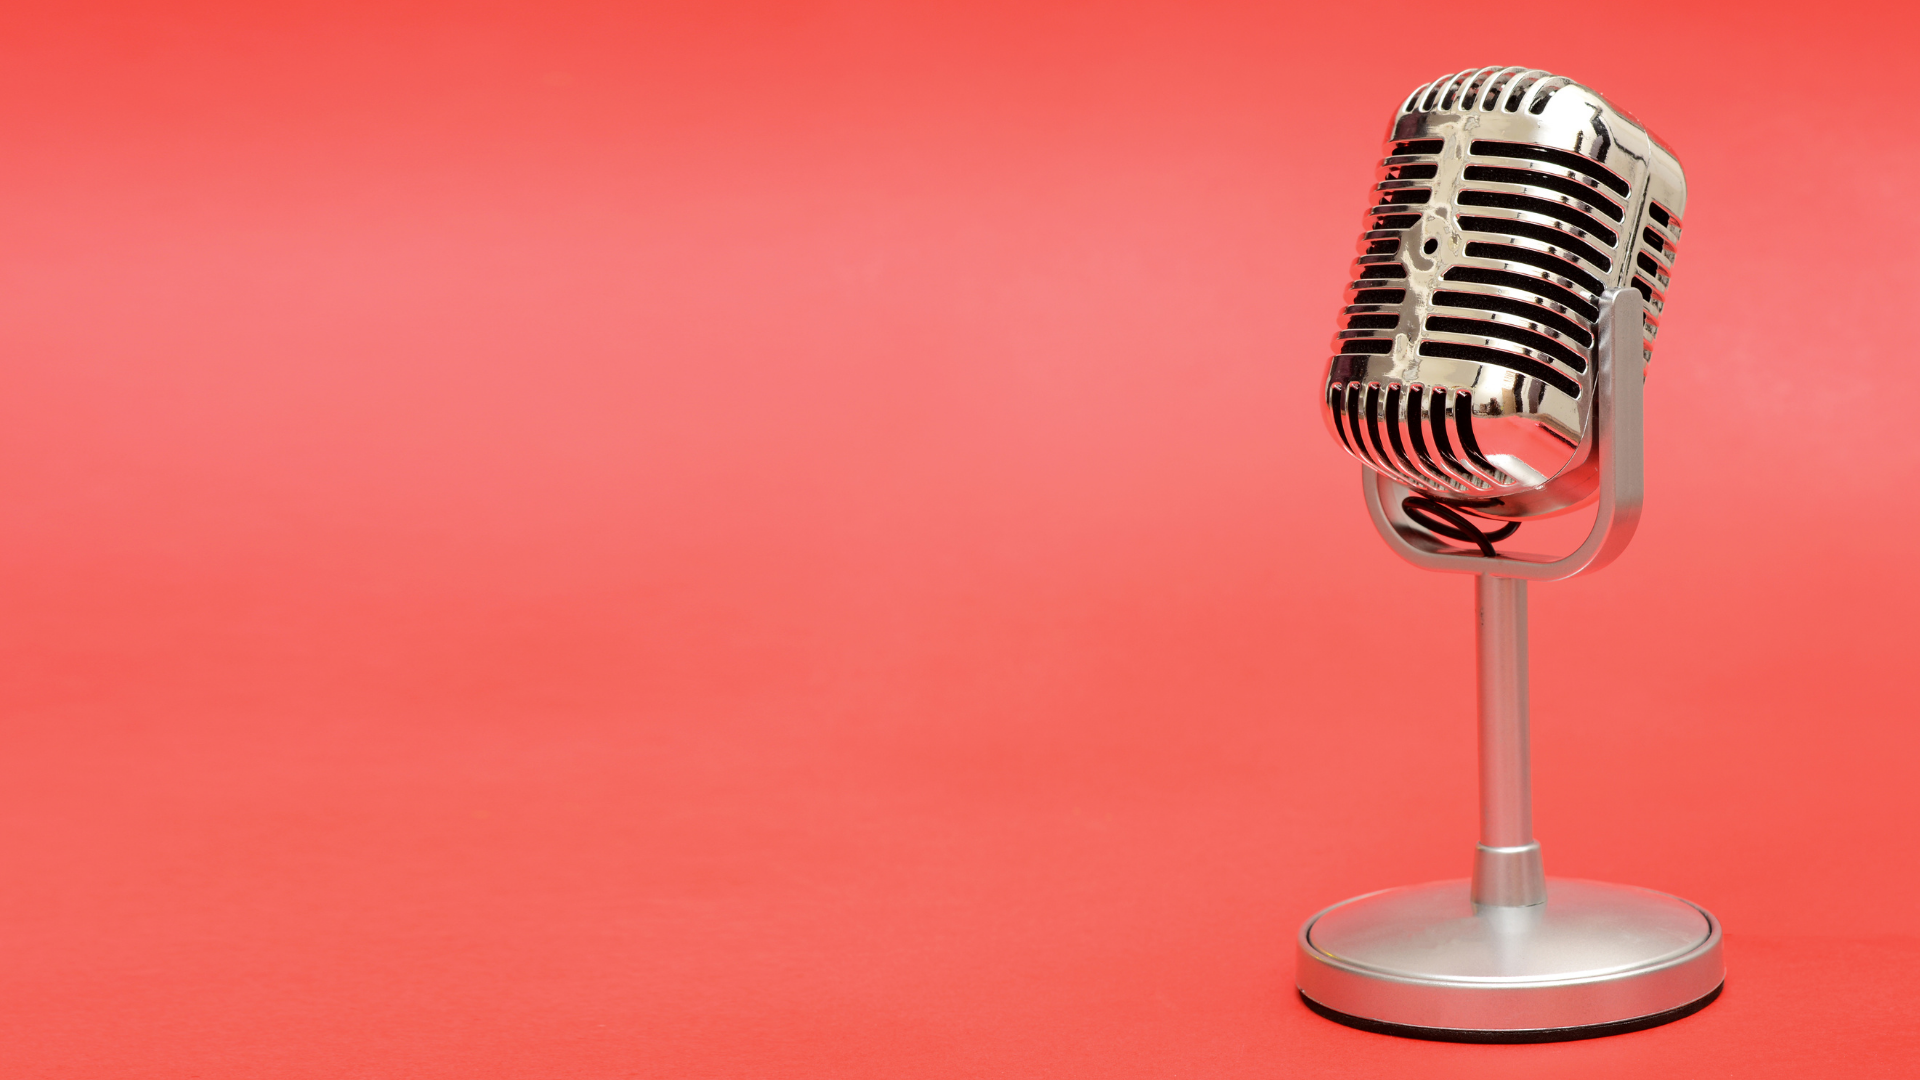 microphone-on-red-background